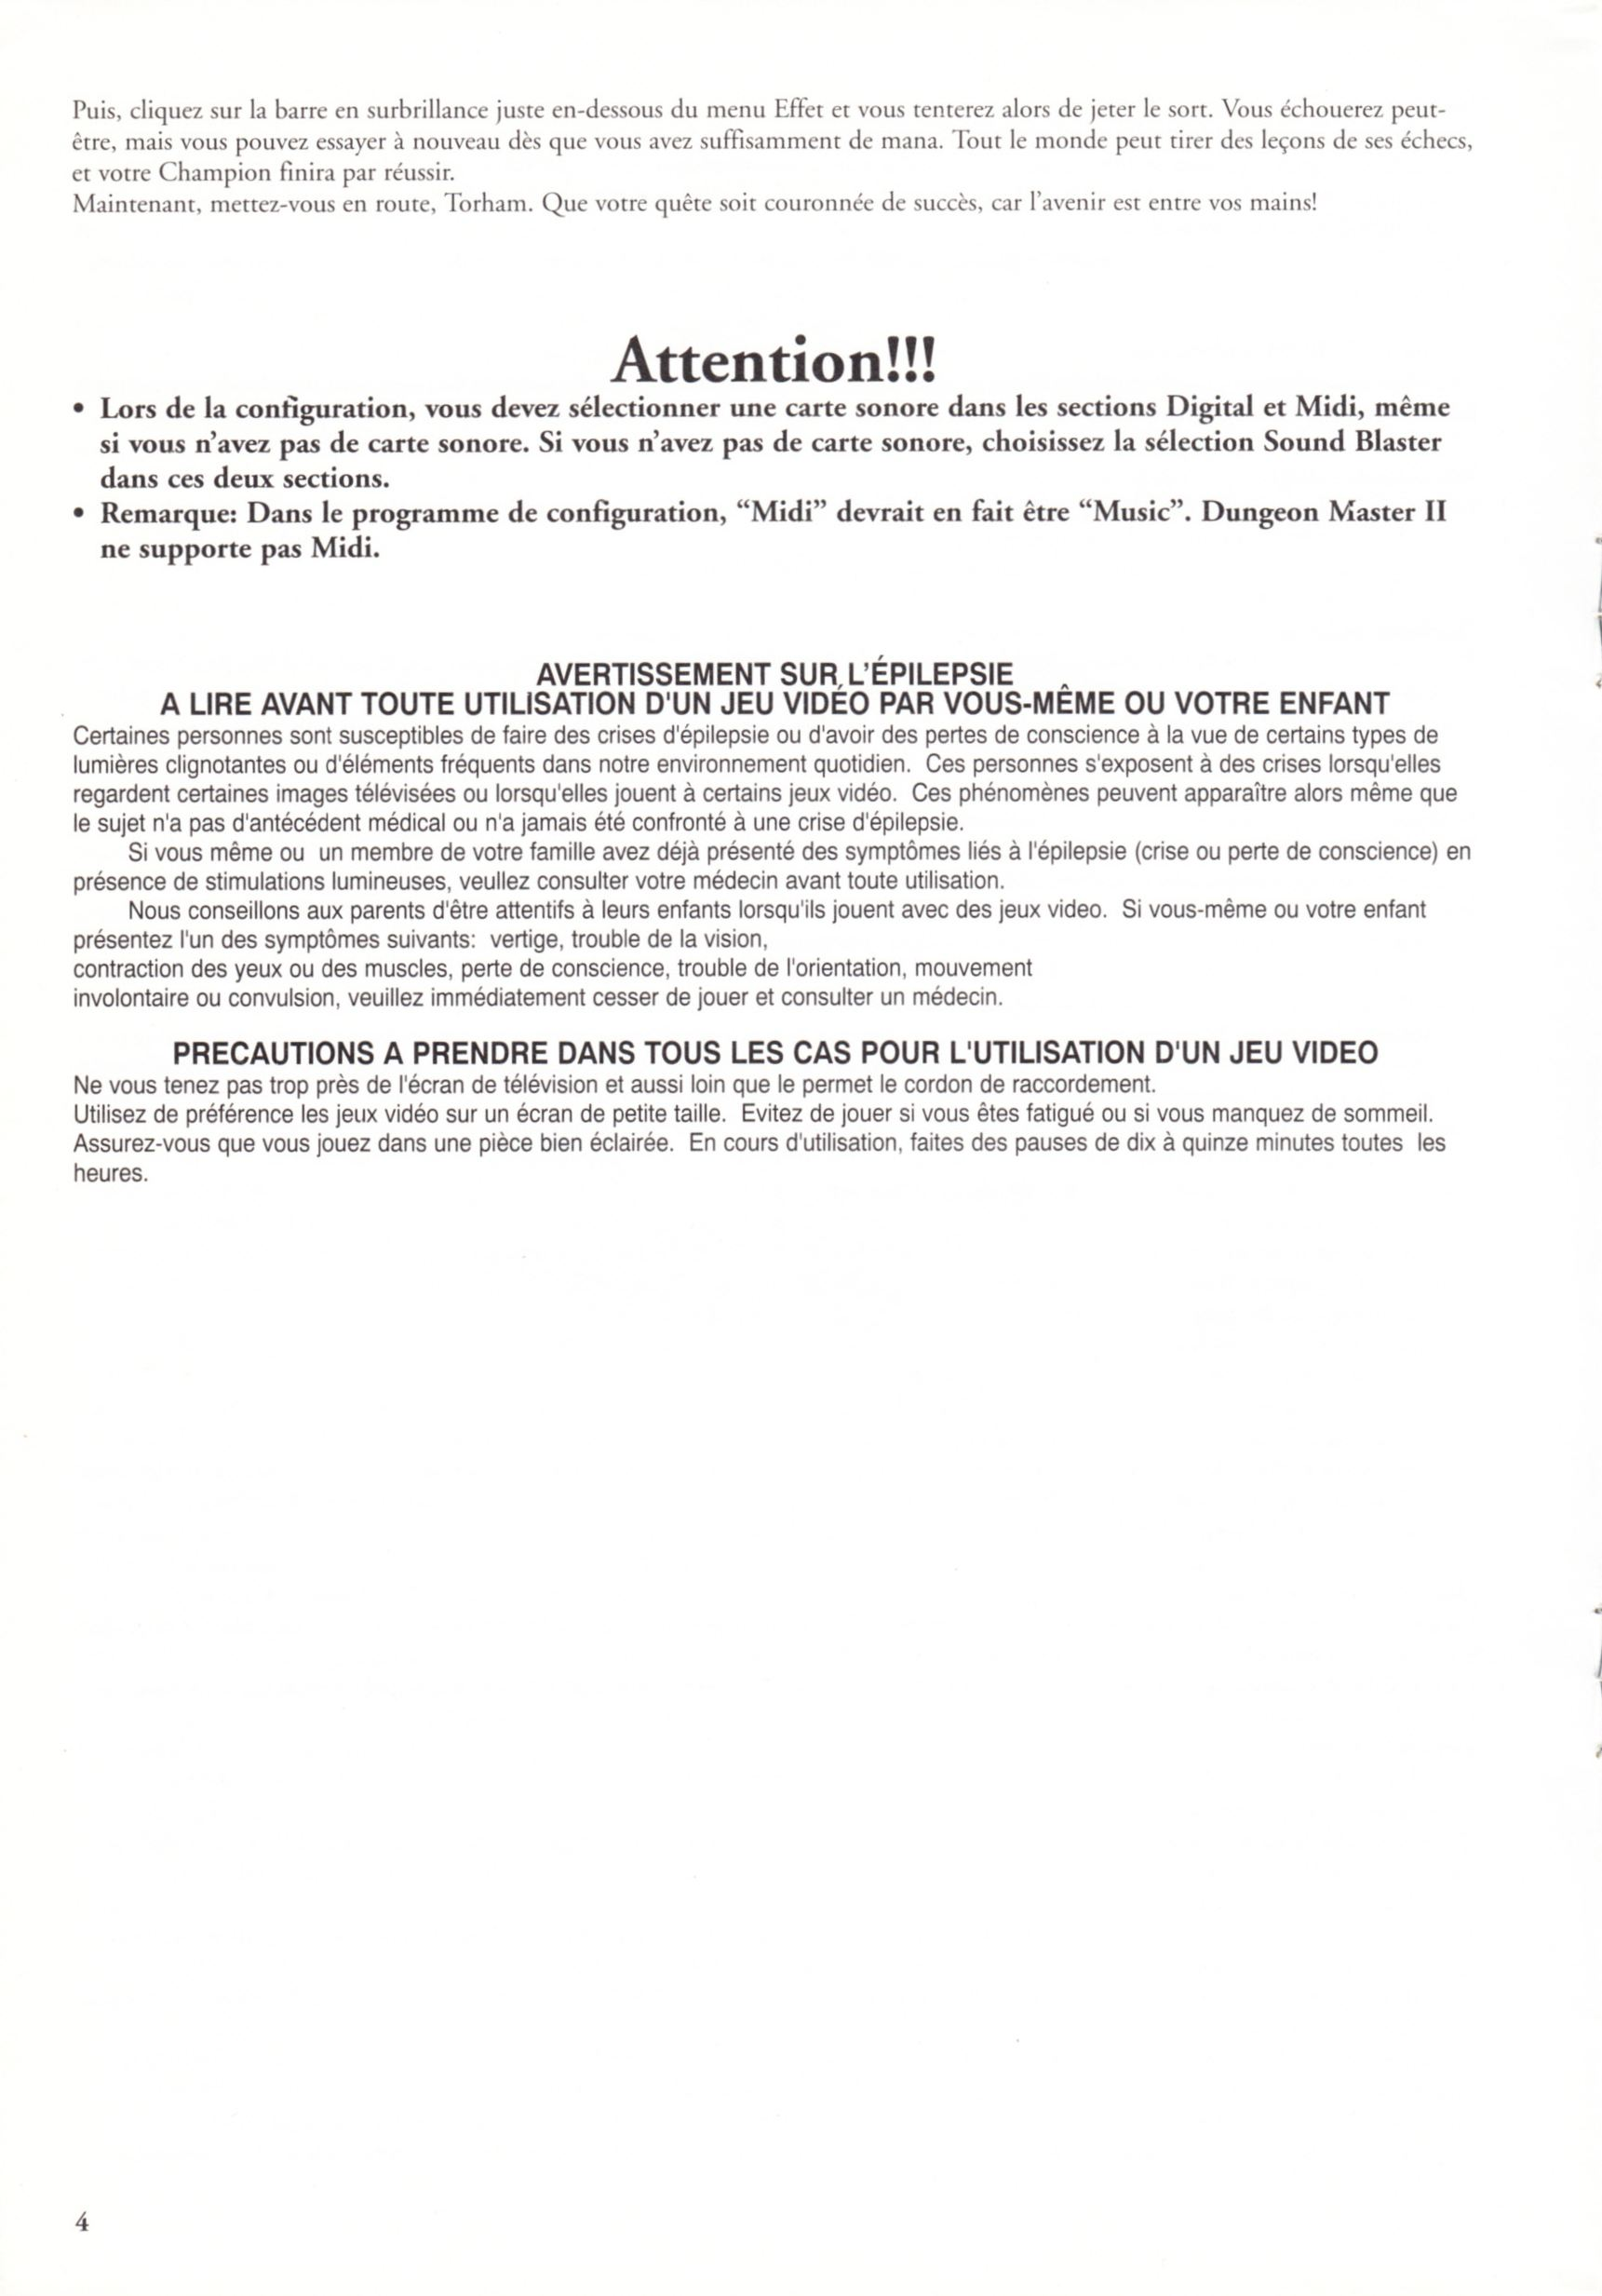 Game - Dungeon Master II - FR - PC - Blackmarket With Manual - Reference Card - Page 004 - Scan